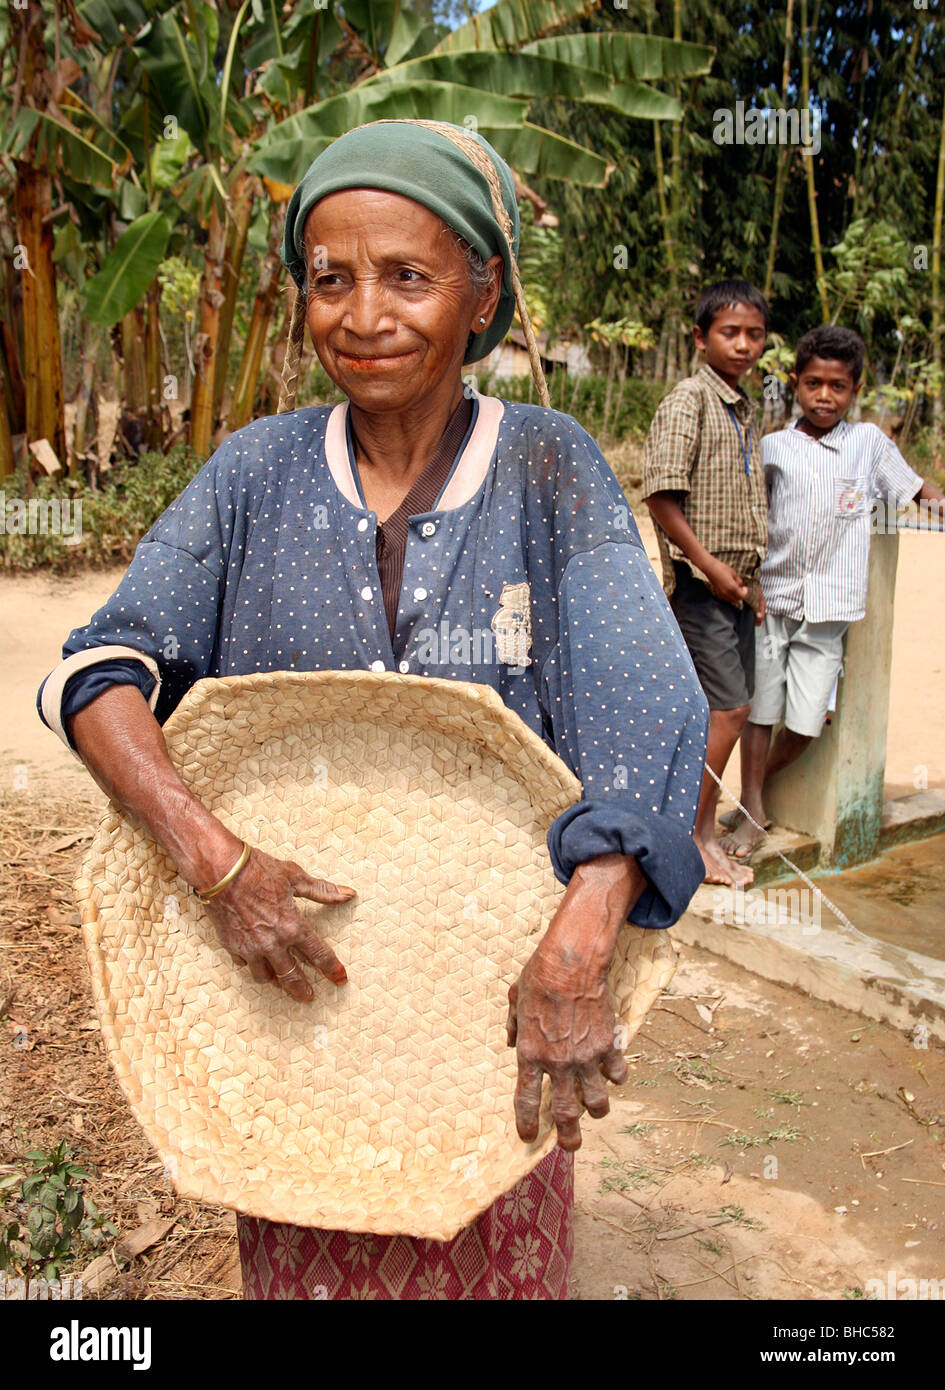 Respected elderly hard working woman farmer with her rice gleaning basket at Elcolbere village Alieu region EastTimor Stock Photo